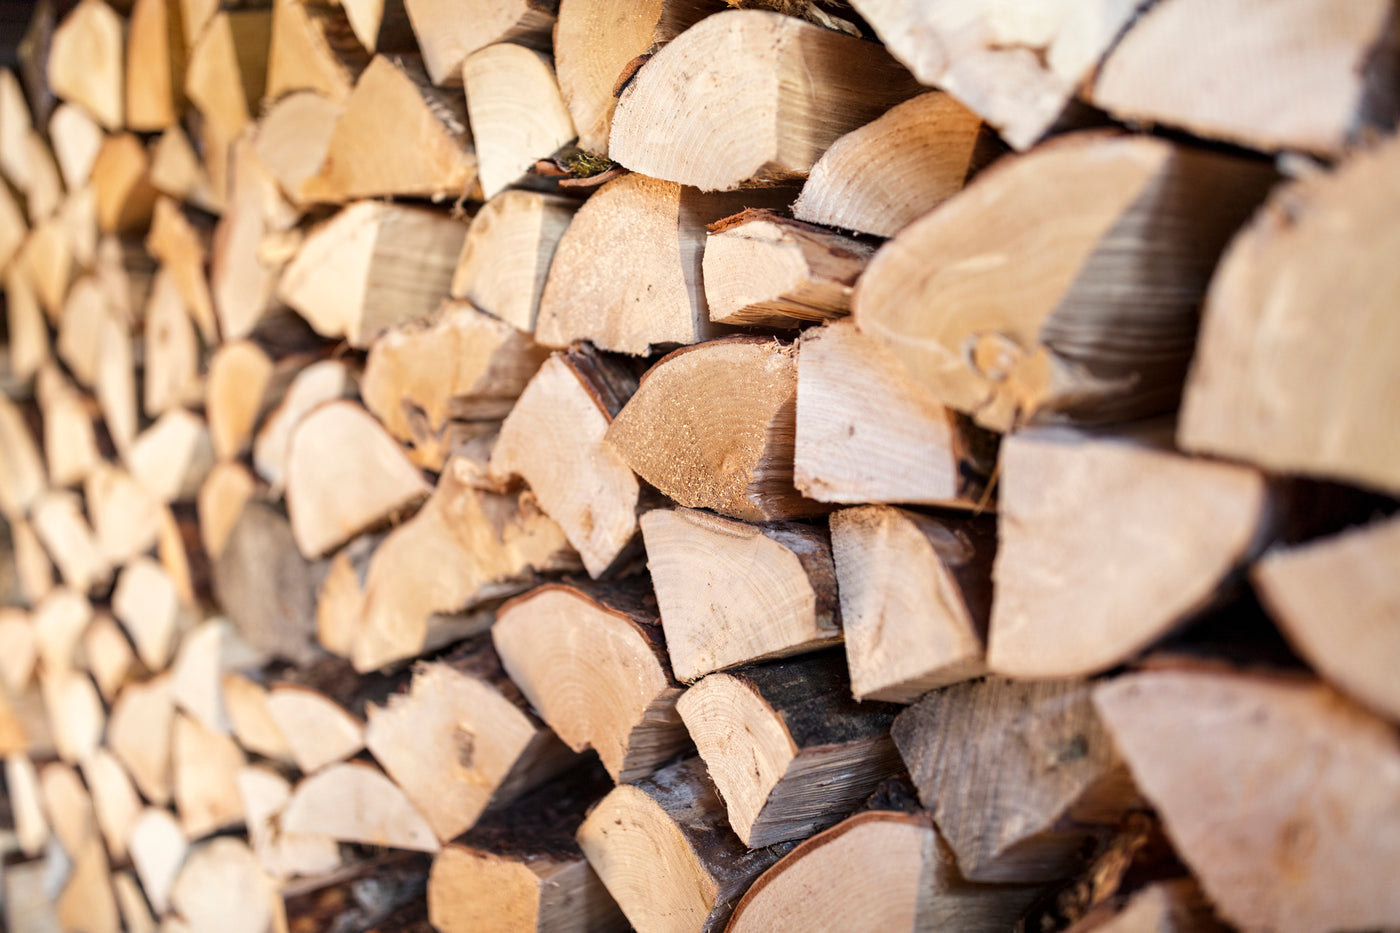 How to build a wood store for your log burning stove